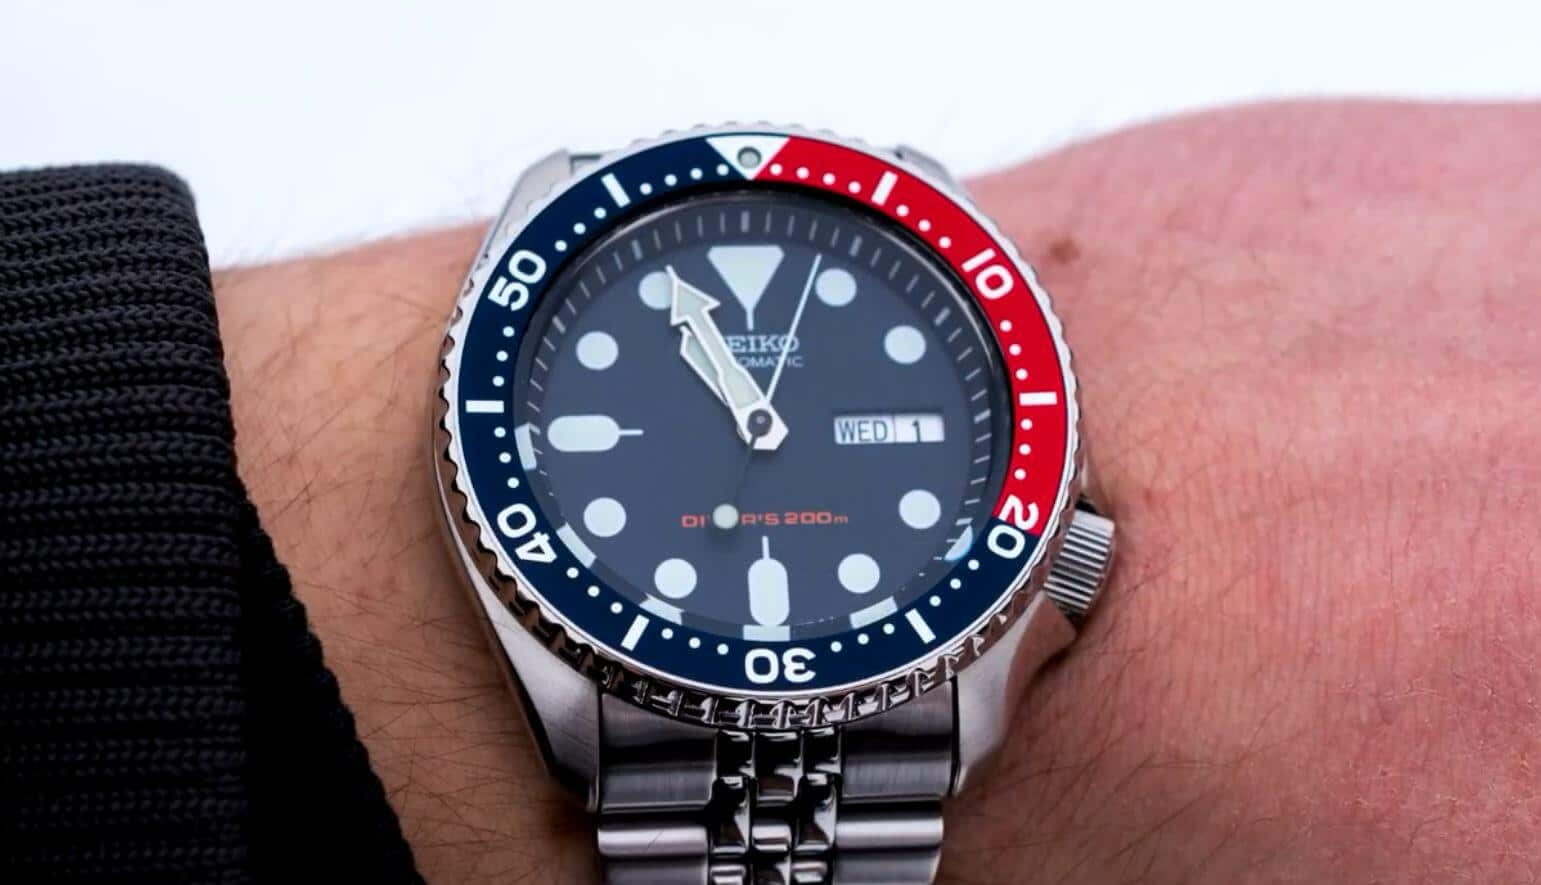 Seiko SKX009 mens watch